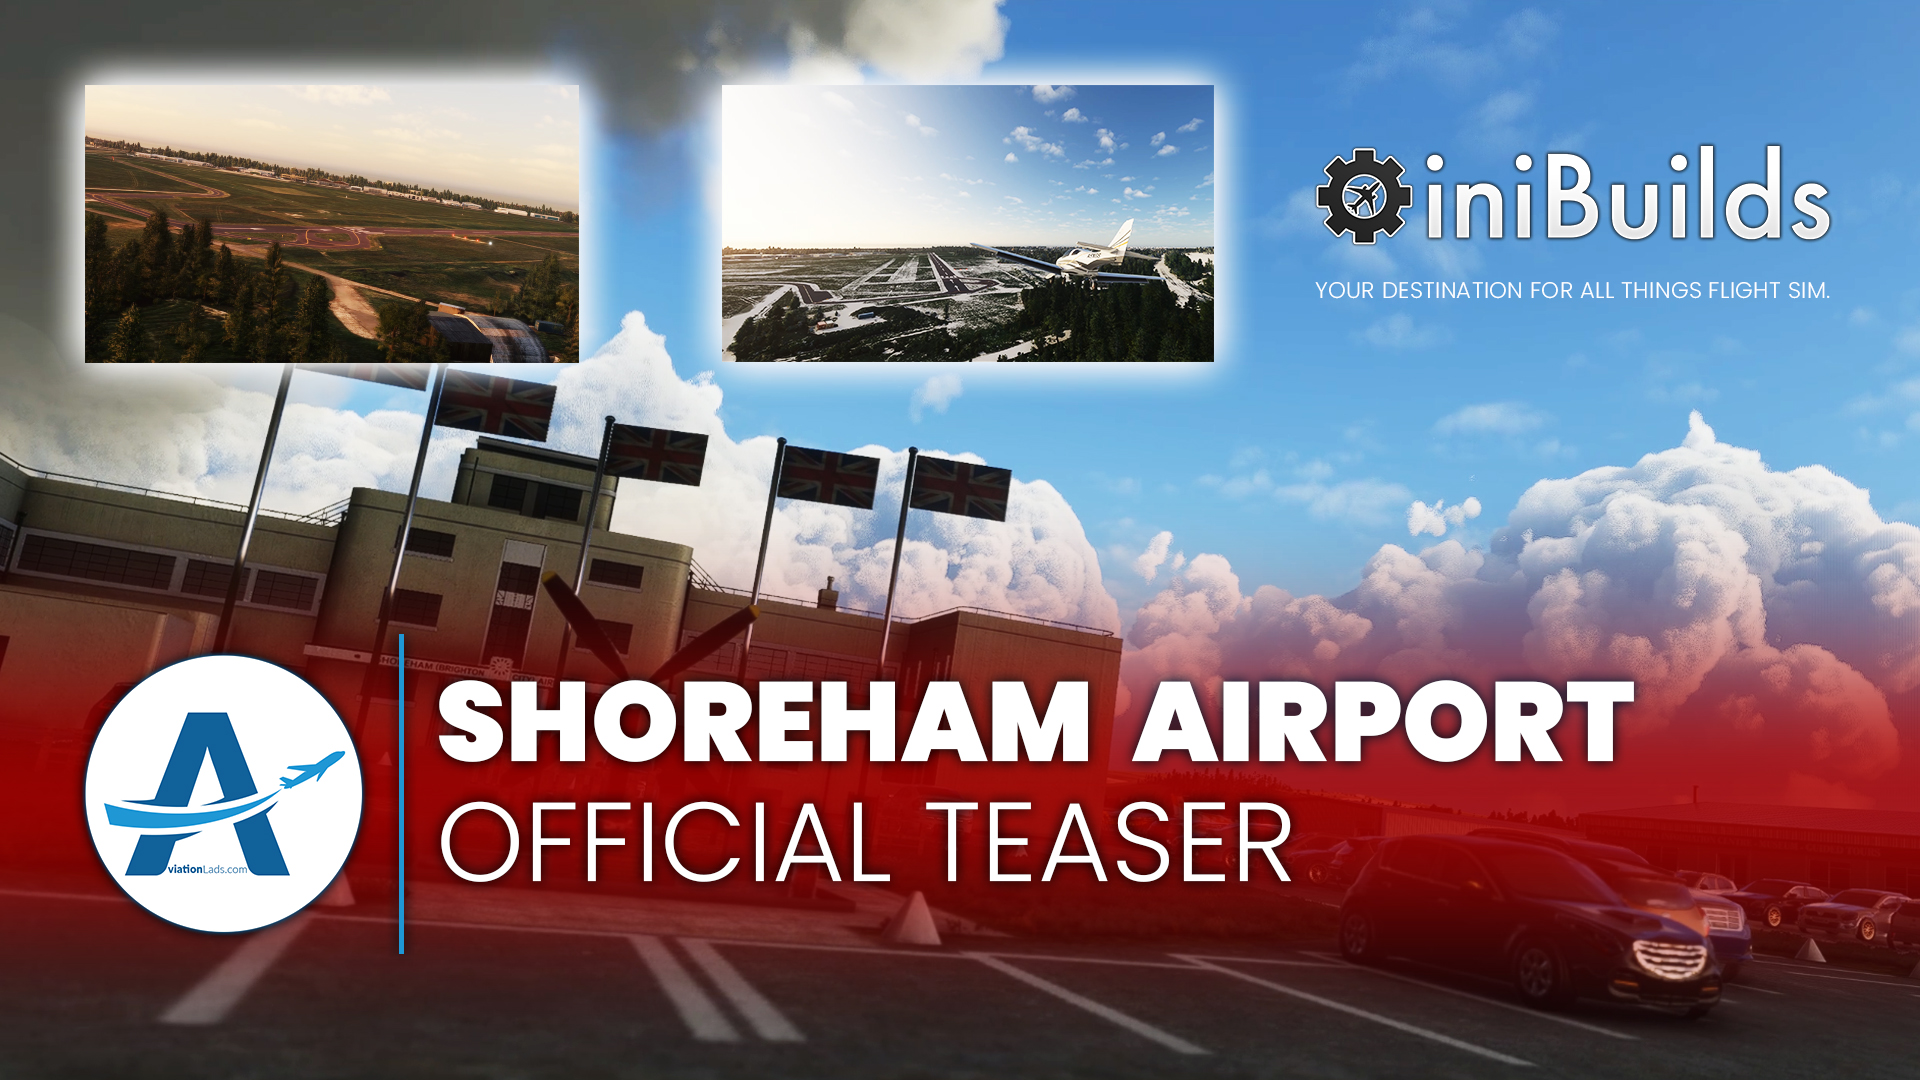 [TEASER] iniBuilds – Shoreham Airport